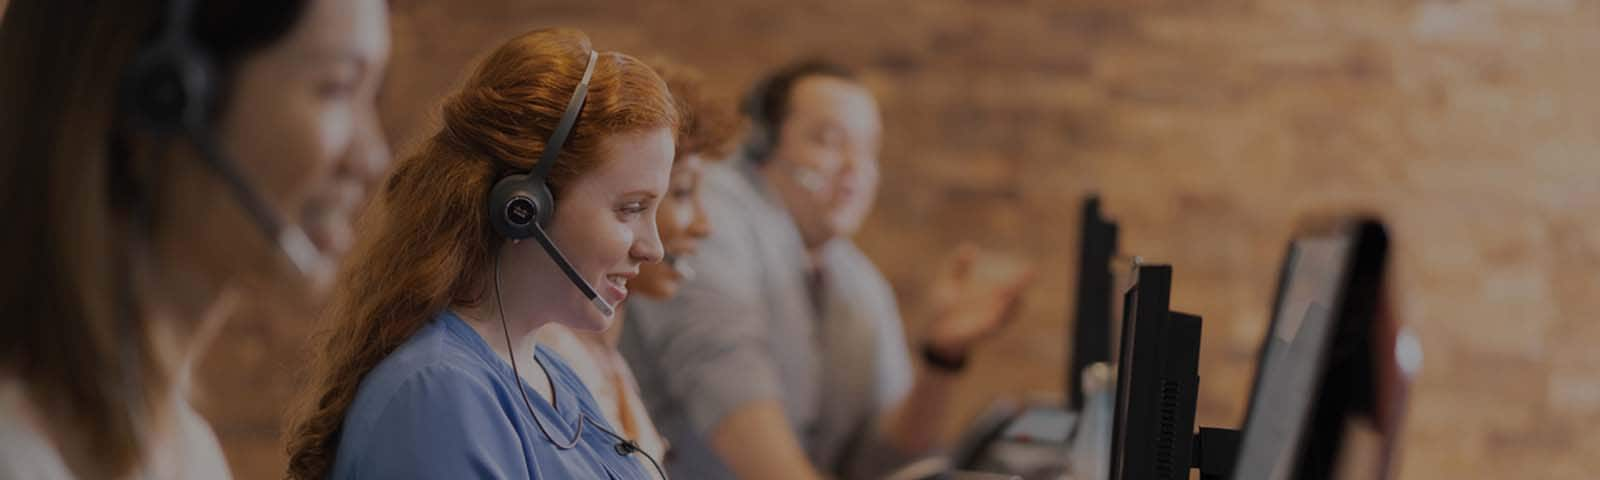 Webex Contact Center AI Solutions